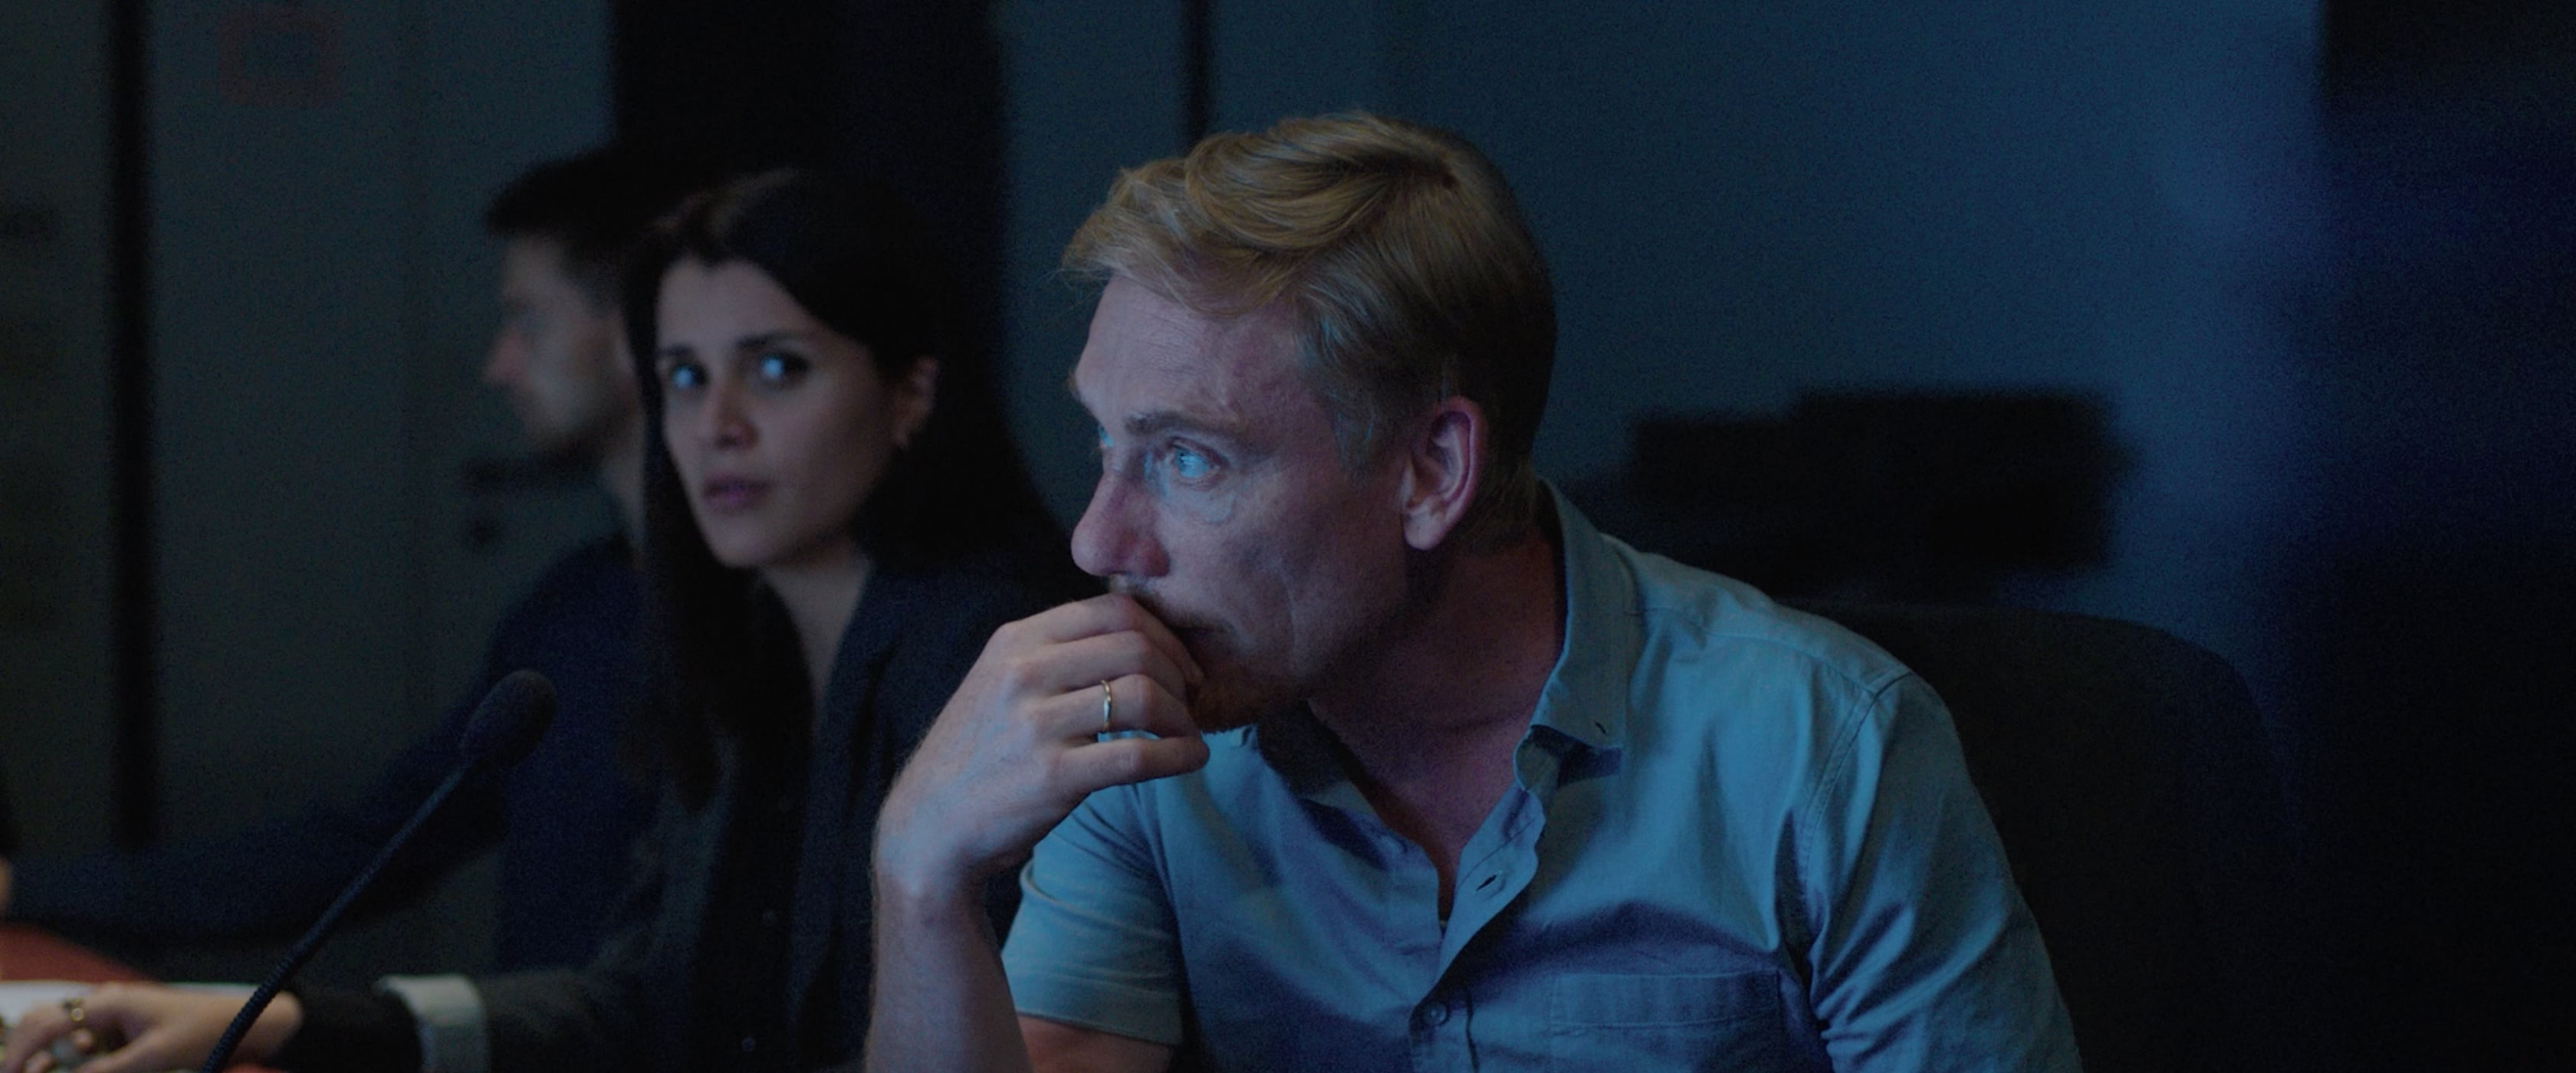 A man looking at a screen. The woman behind him looks towards him.